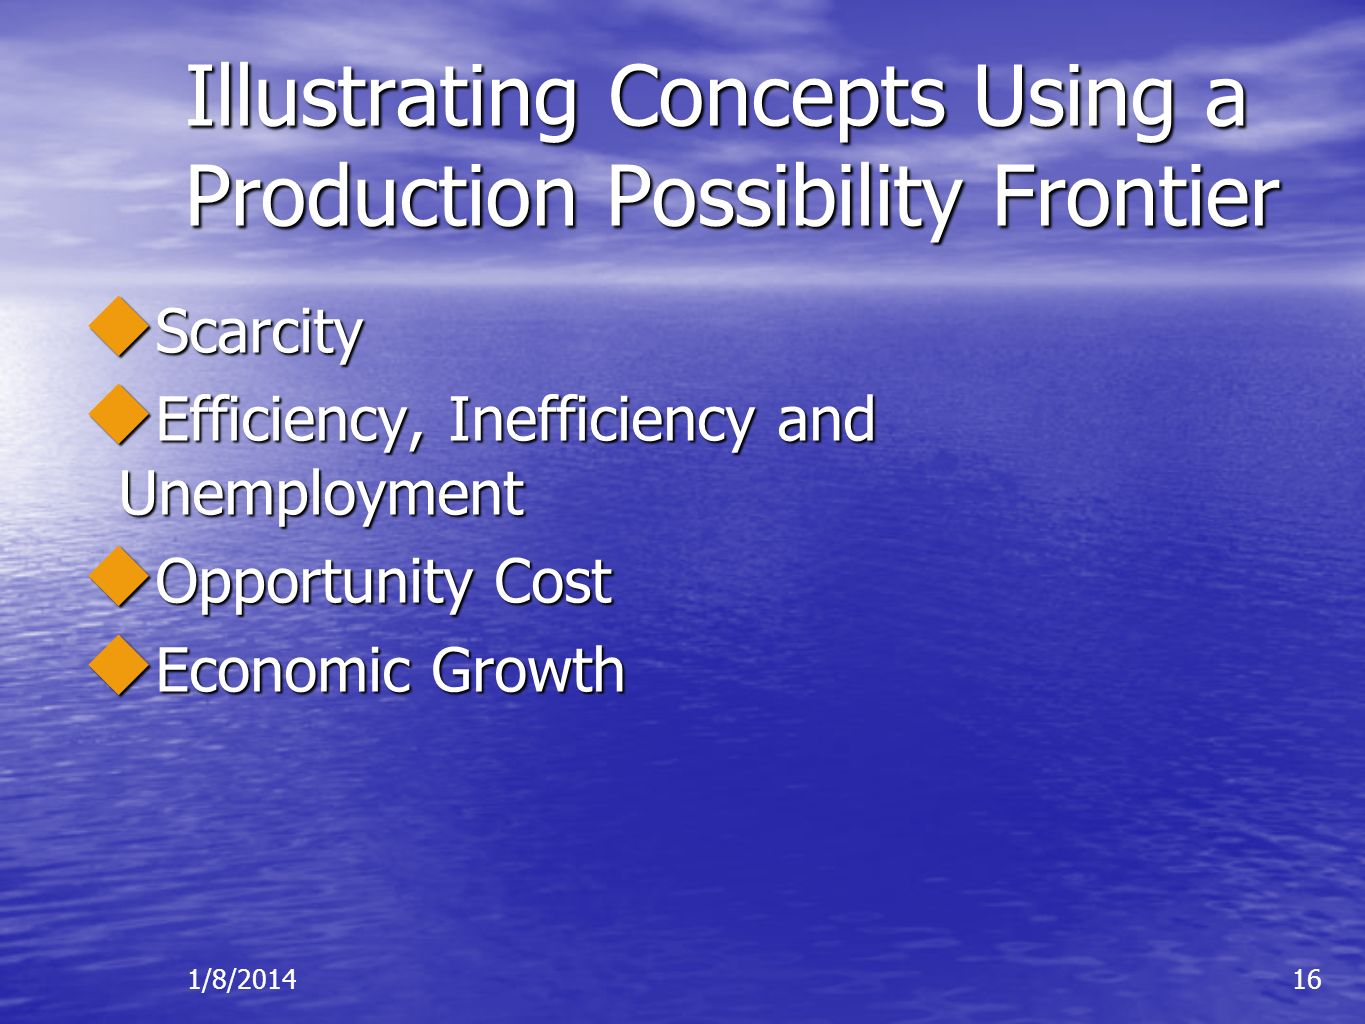 Illustrating Concepts Using a Production Possibility Frontier